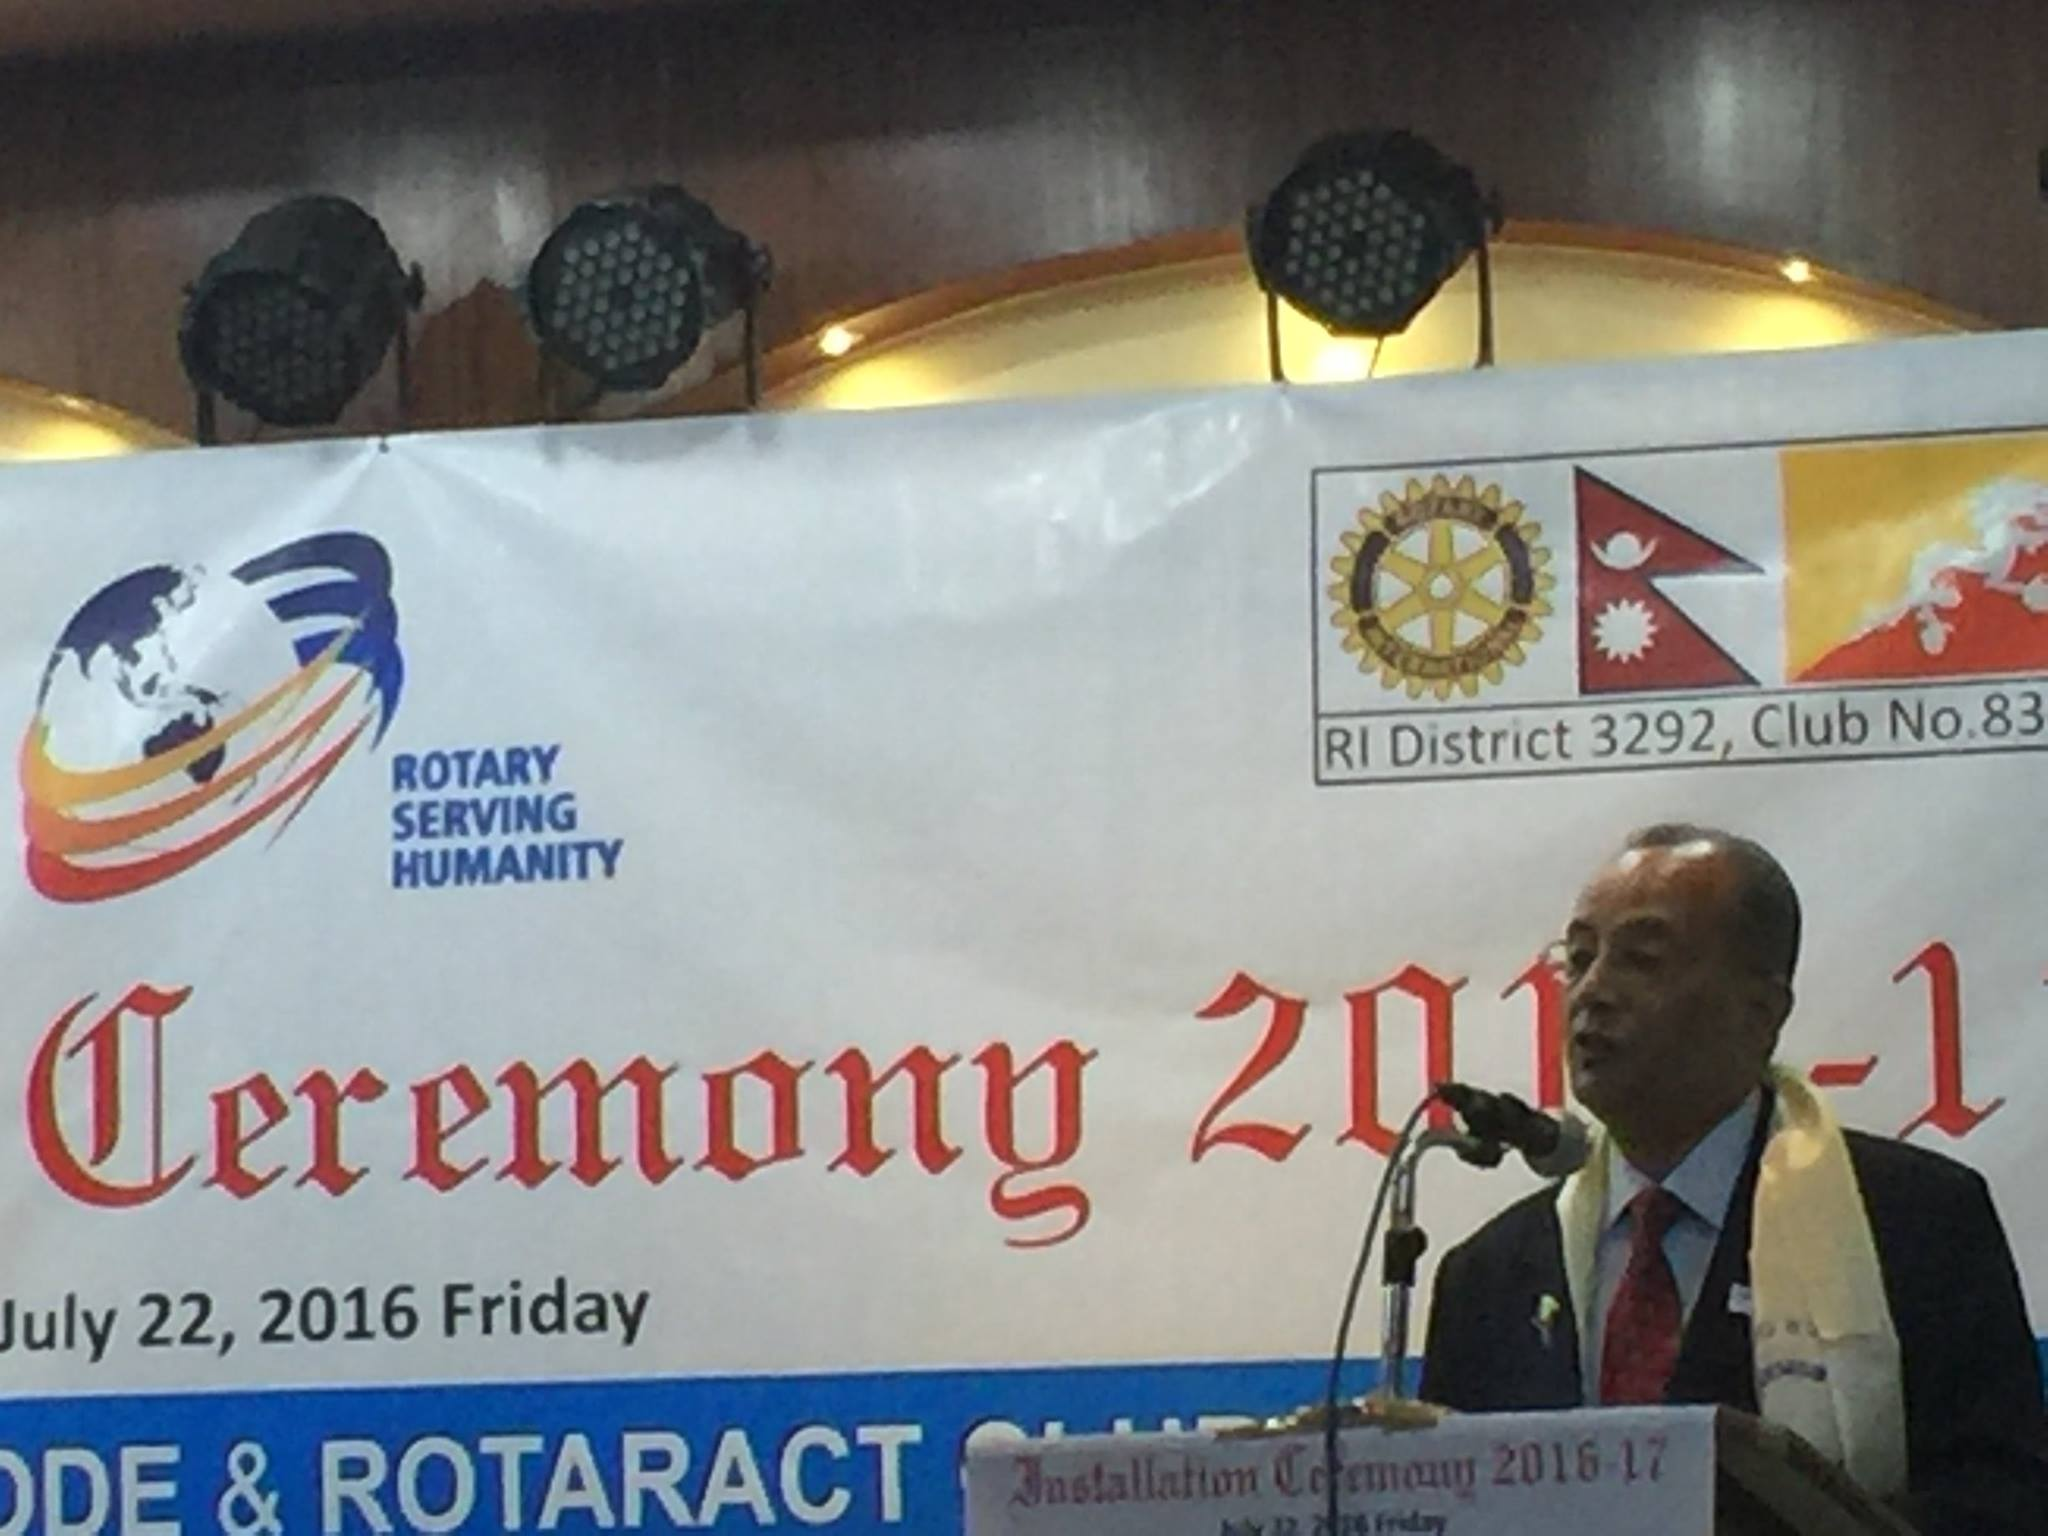 Attending-Installation-Ceremony-of-Neighboring-Rotary-Clubs-Rotary-Club-of-Kakarvitta-1